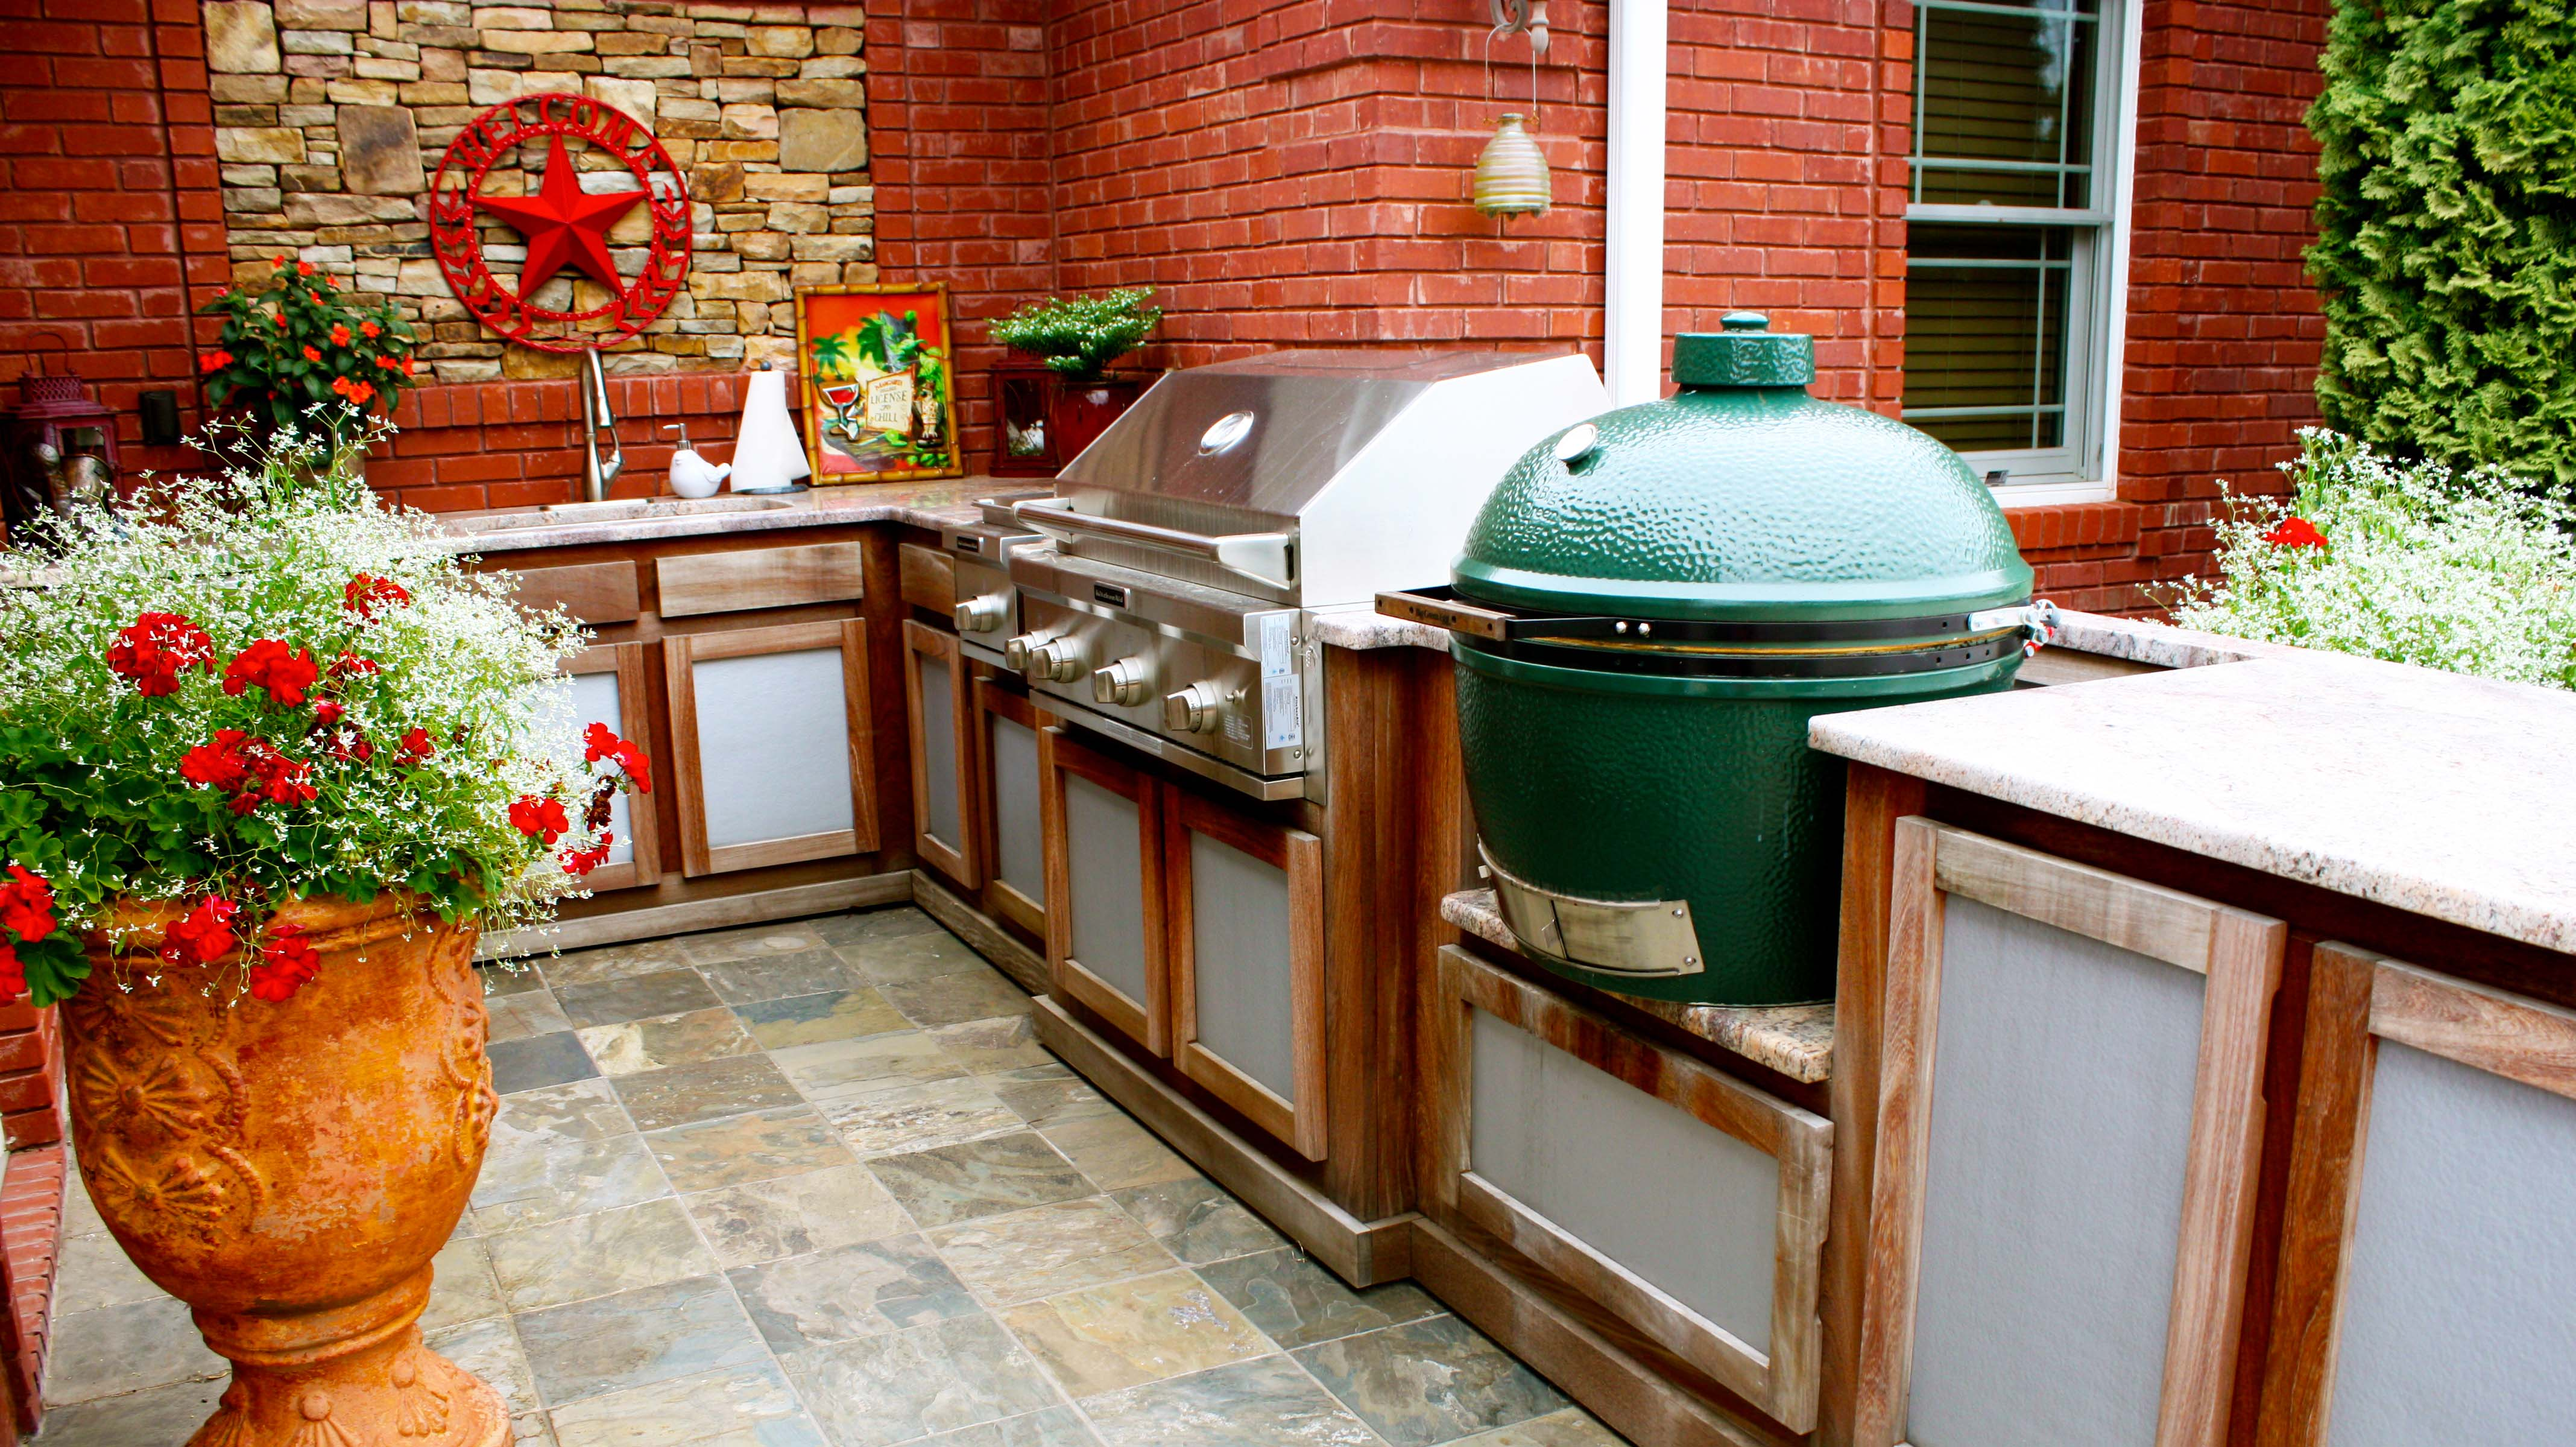 backyard-kitchen-designs-ideas-with-outdoor-kitchen-grills-design-for-backyard-landscaping-ideas-for-built-bbq-grill